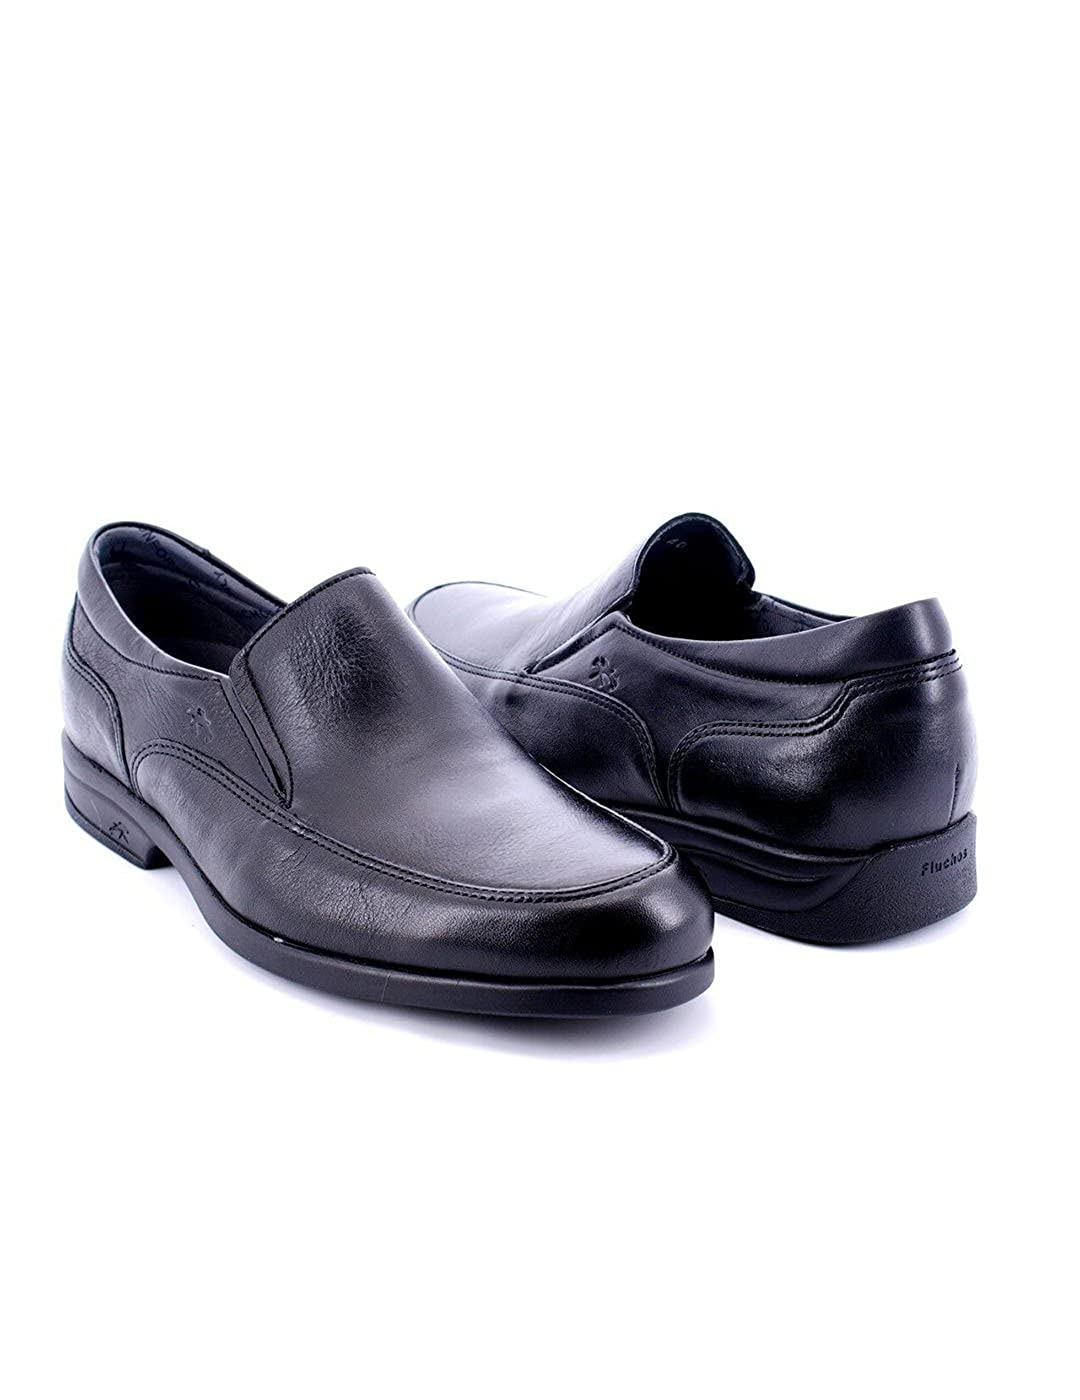 Zapato Fluchos Only Professional Negro 8902: Amazon.es: Zapatos y complementos